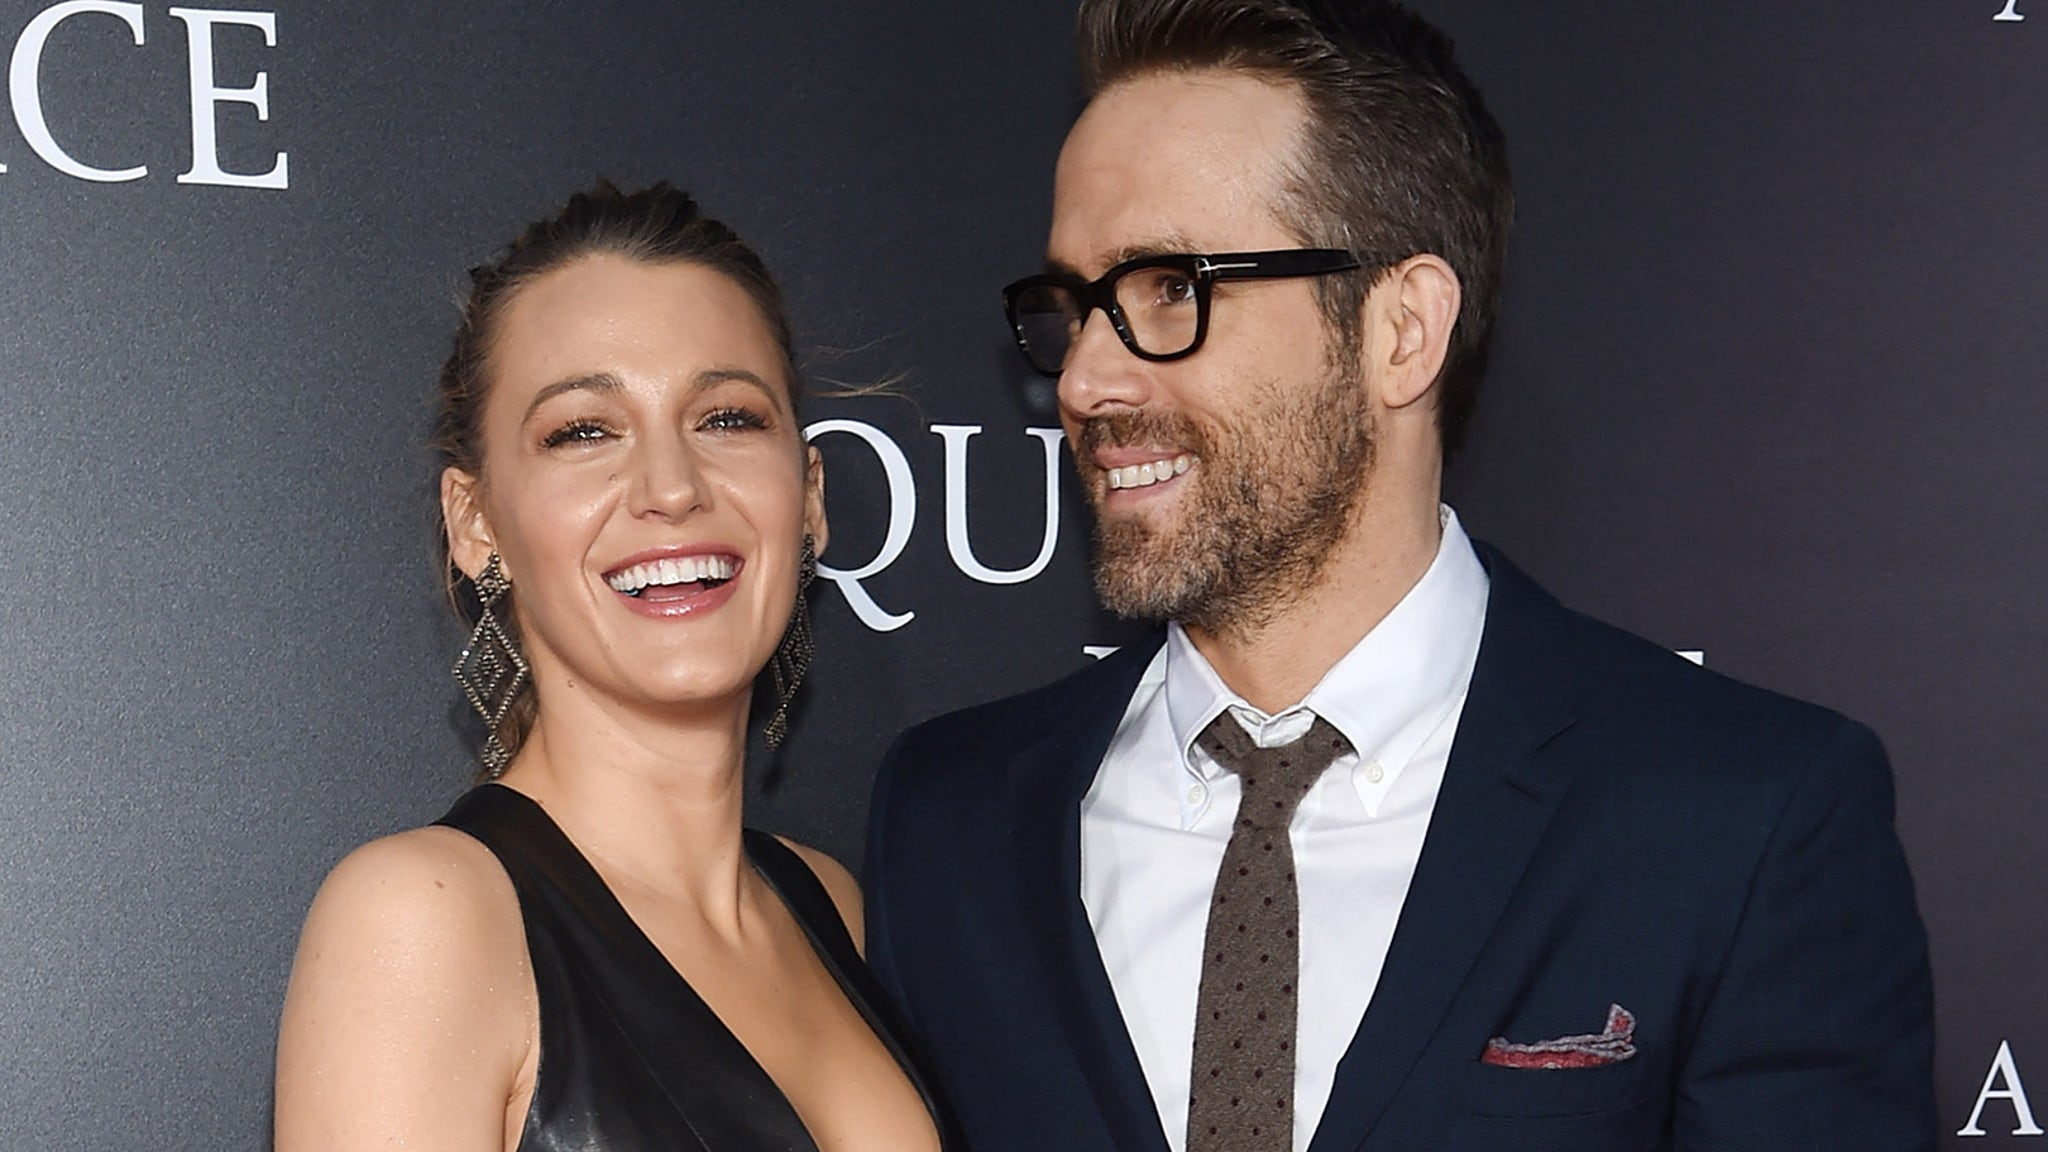 Ryan Reynolds and Blake Lively Celebrate 10th Anniversary of First Date